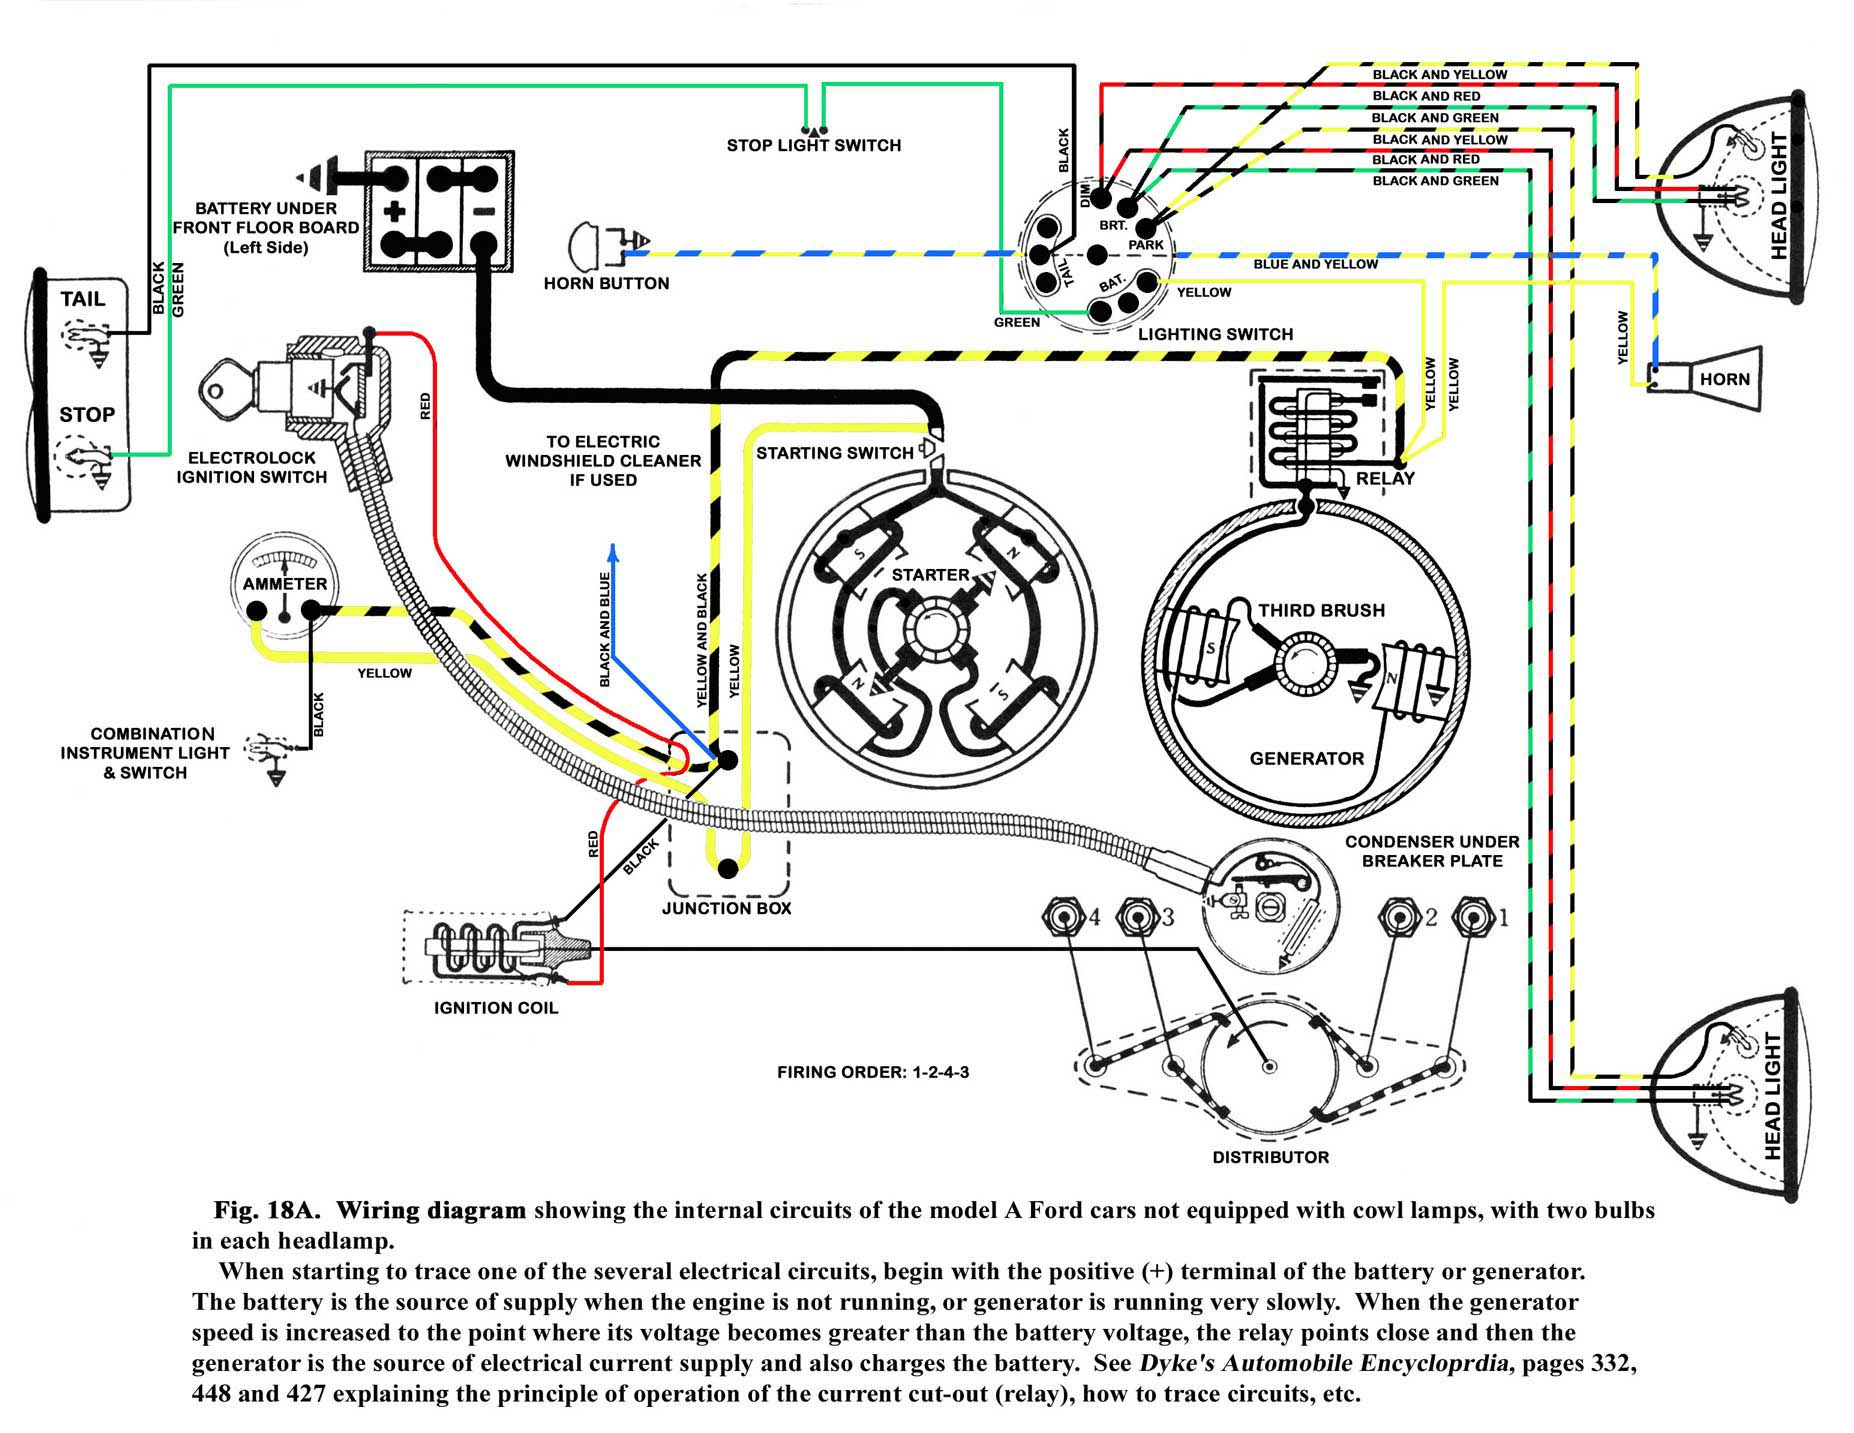 Ford Wiring Schematics Another Blog About Diagram 87 5 0 Plug Wire Distributor Model A Restorers Club Coil Tester